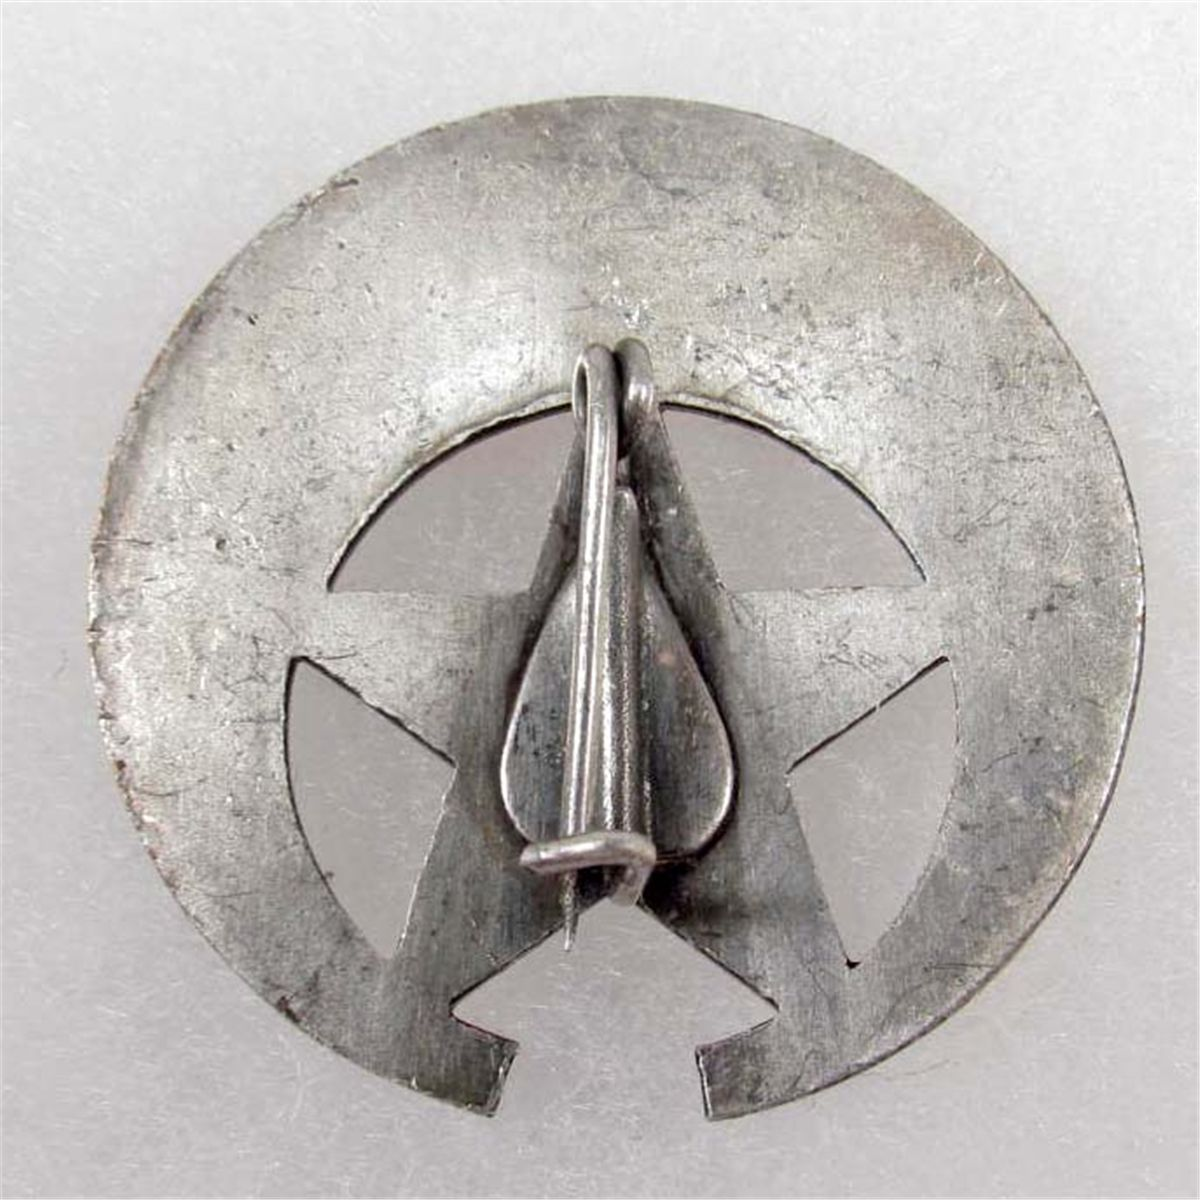 OLD WEST COCHISE COUNTY SHERIFF LAW BADGE - NICKEL CONSTRUCTION